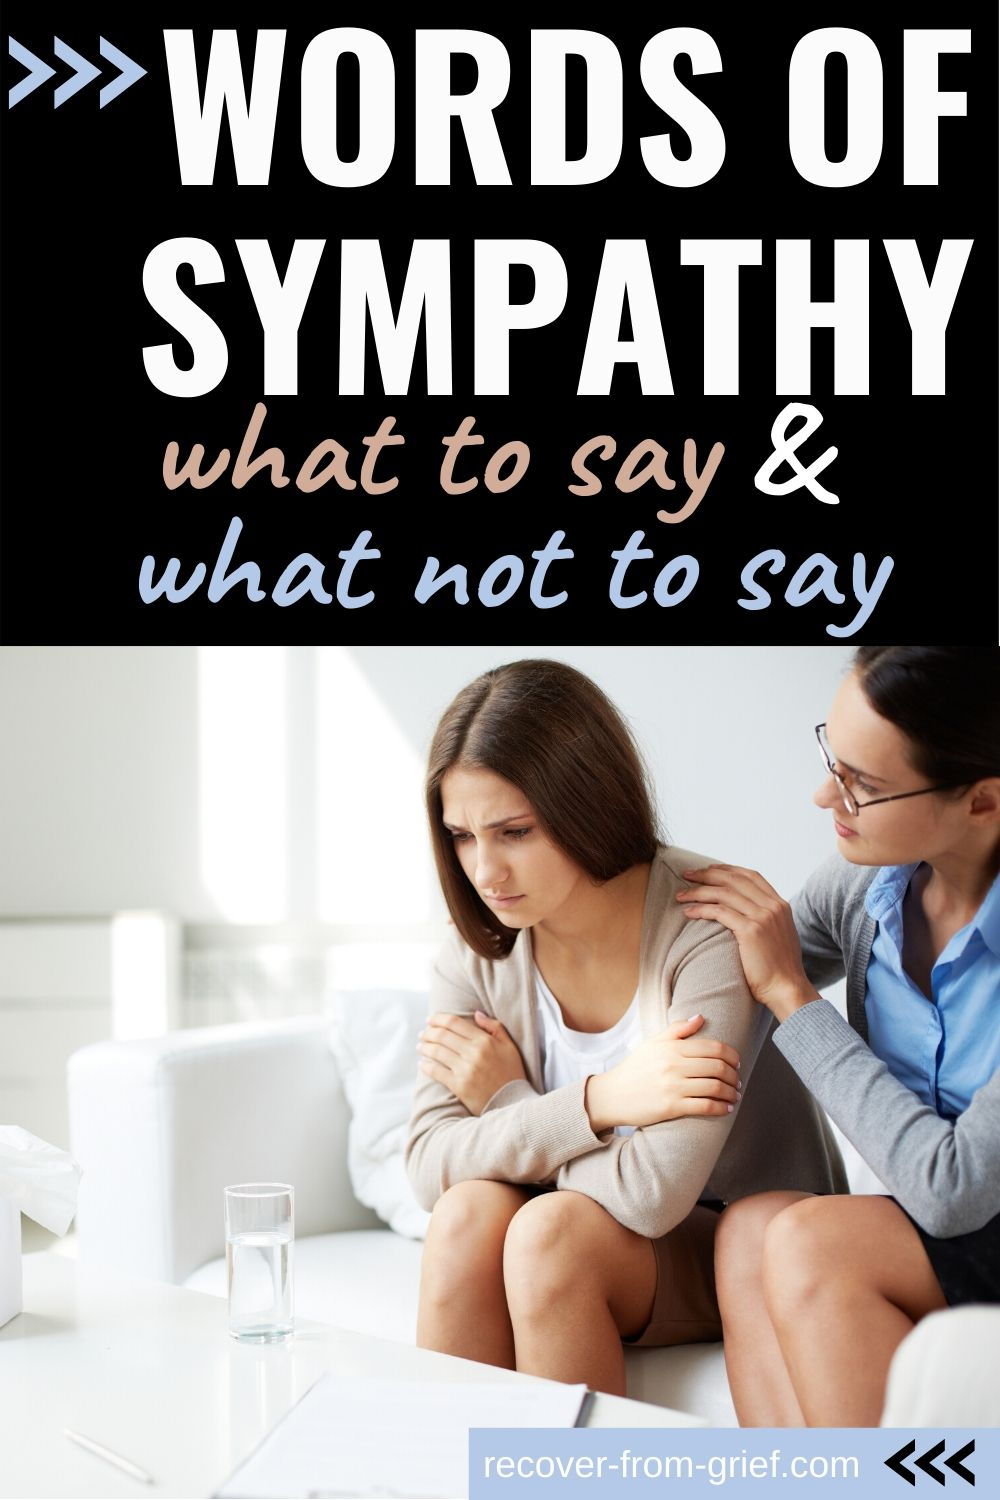 Words of sympahty - what to say and what not to say!